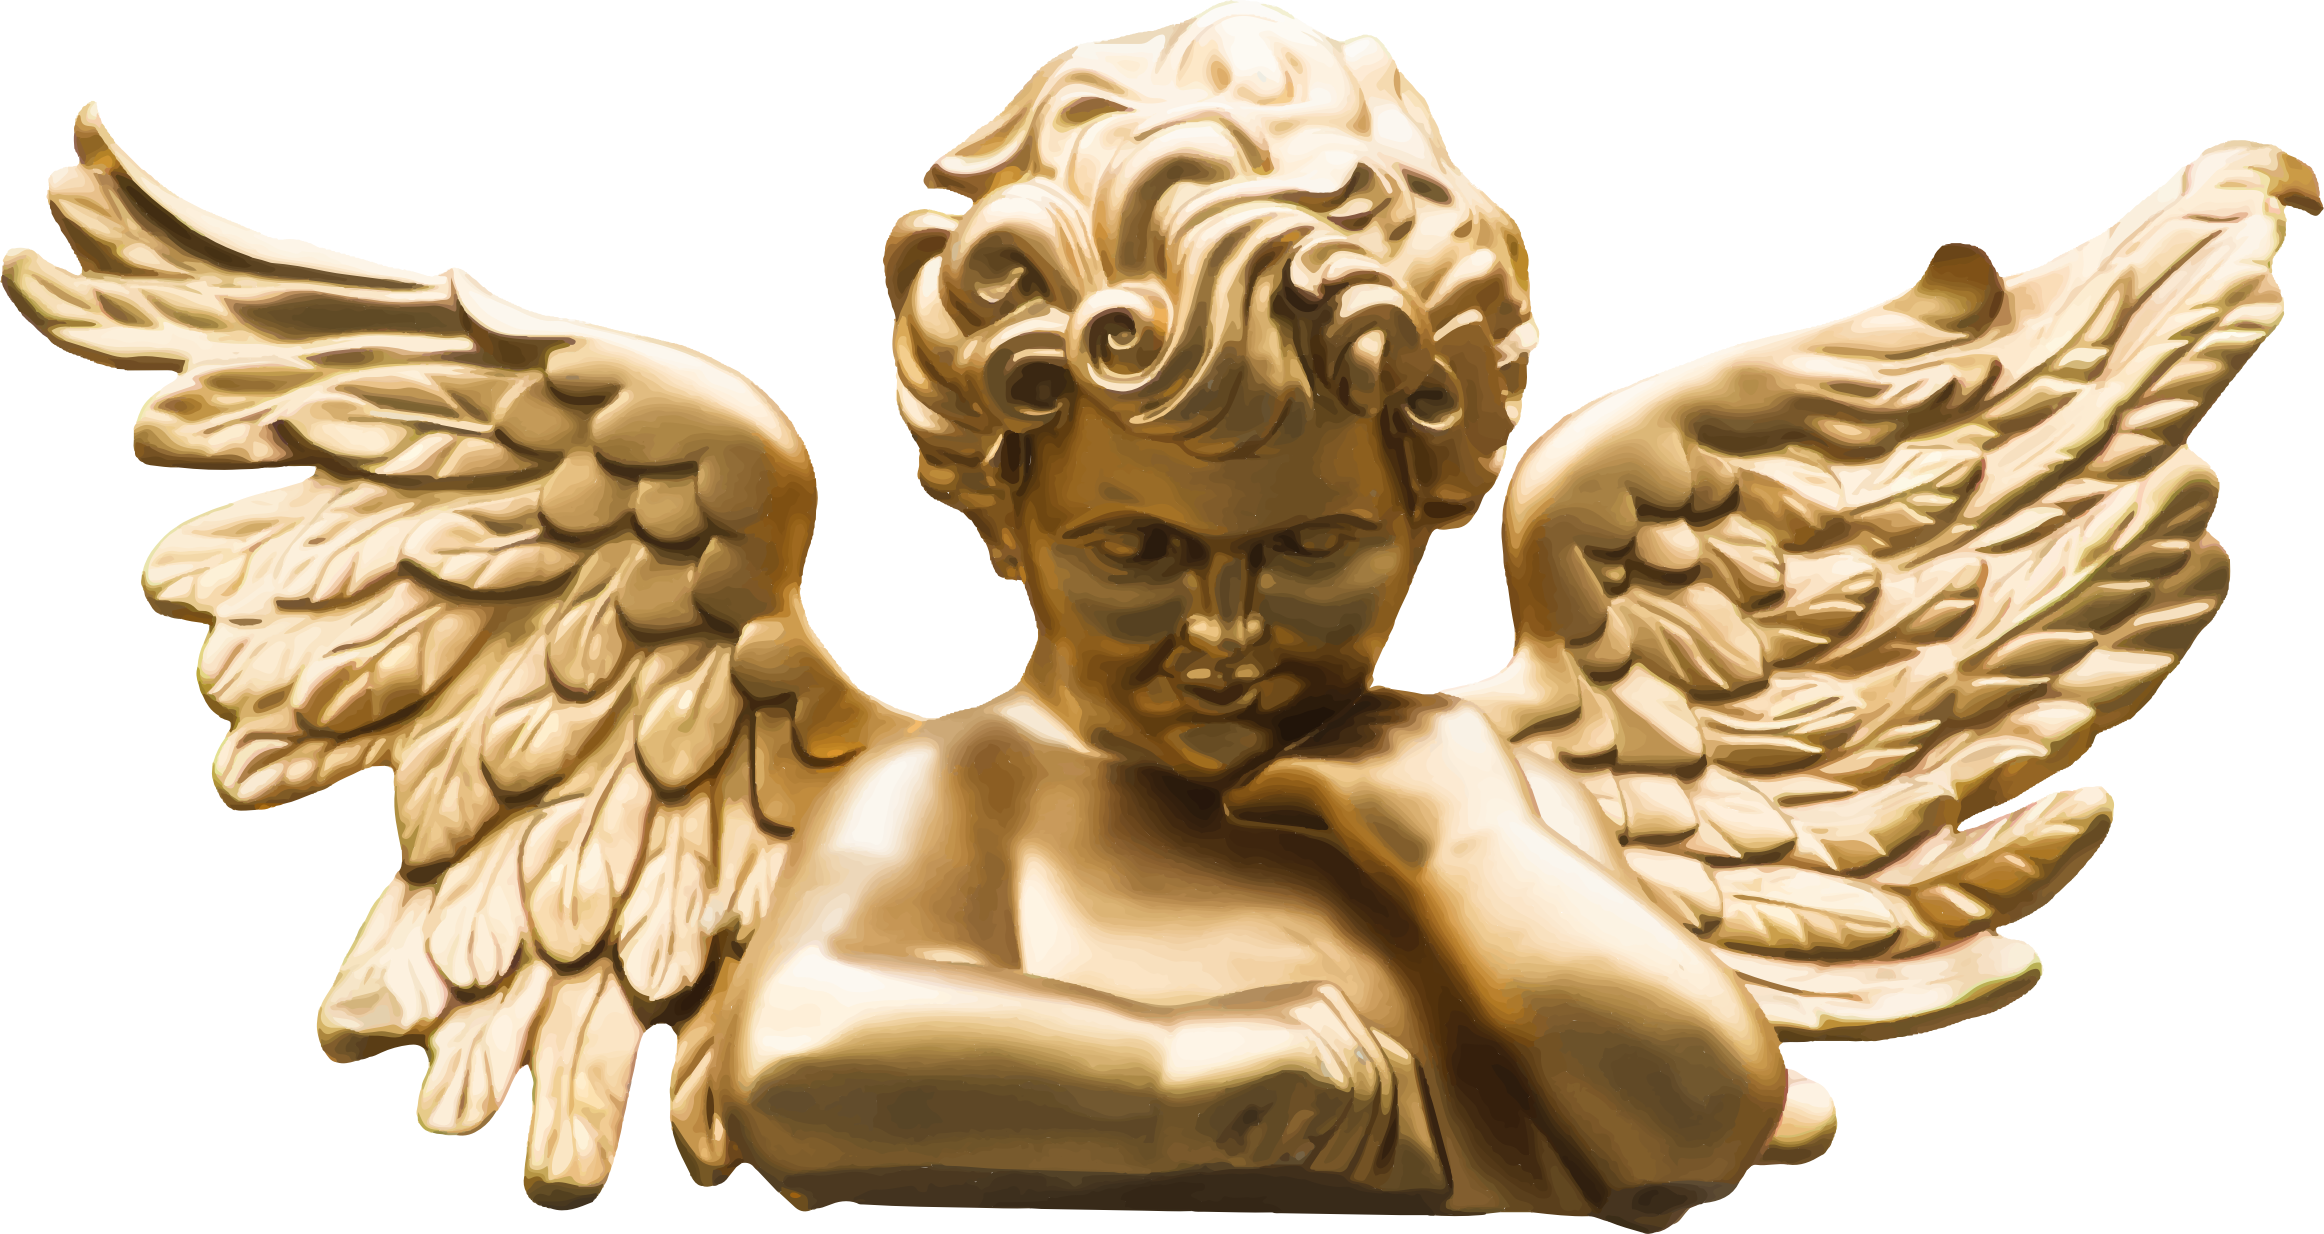 Golden Cherub by GDJ